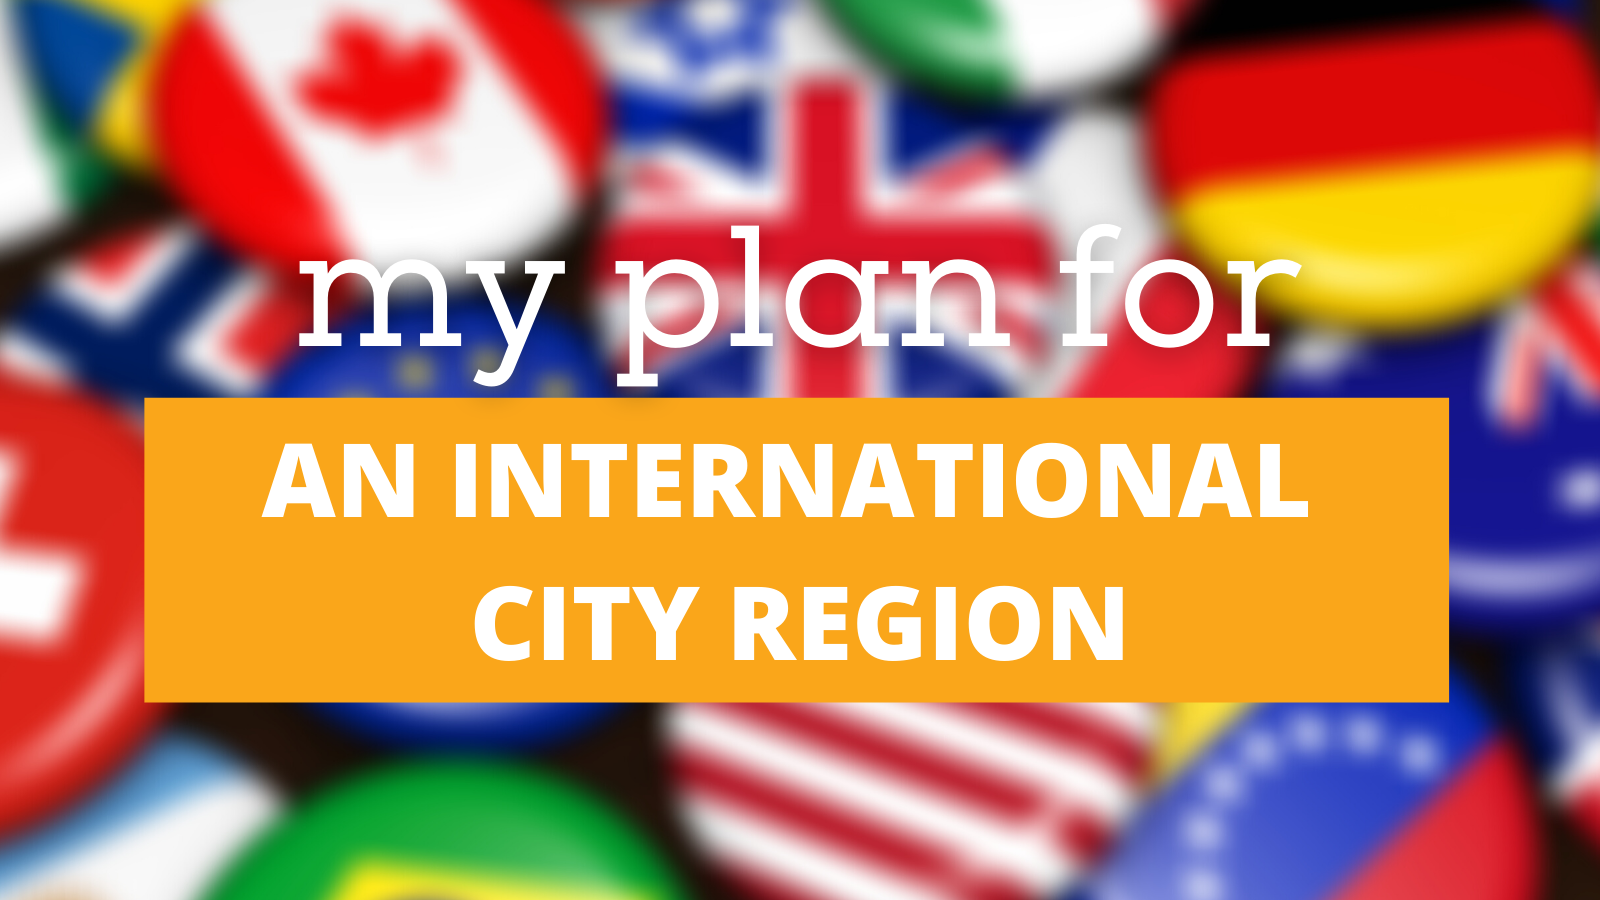 My plan for an international region